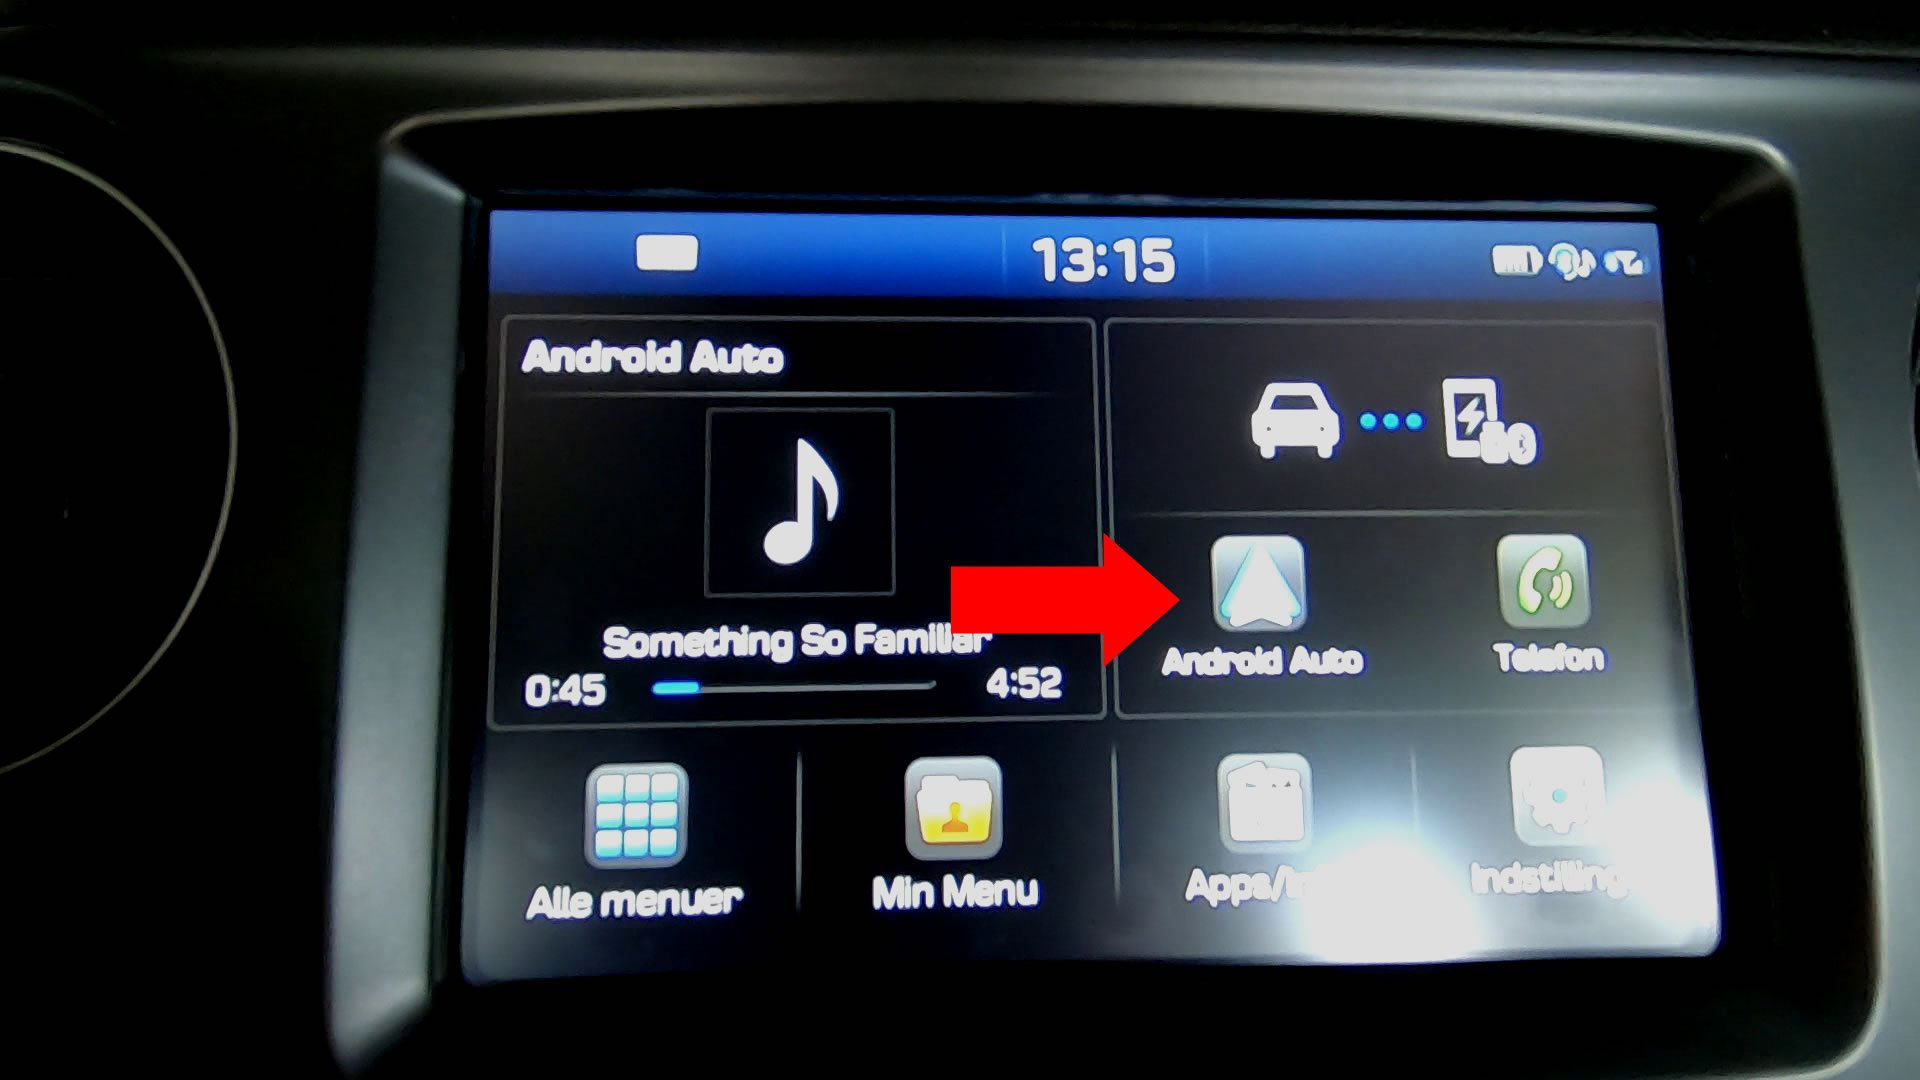 Android Auto app launch